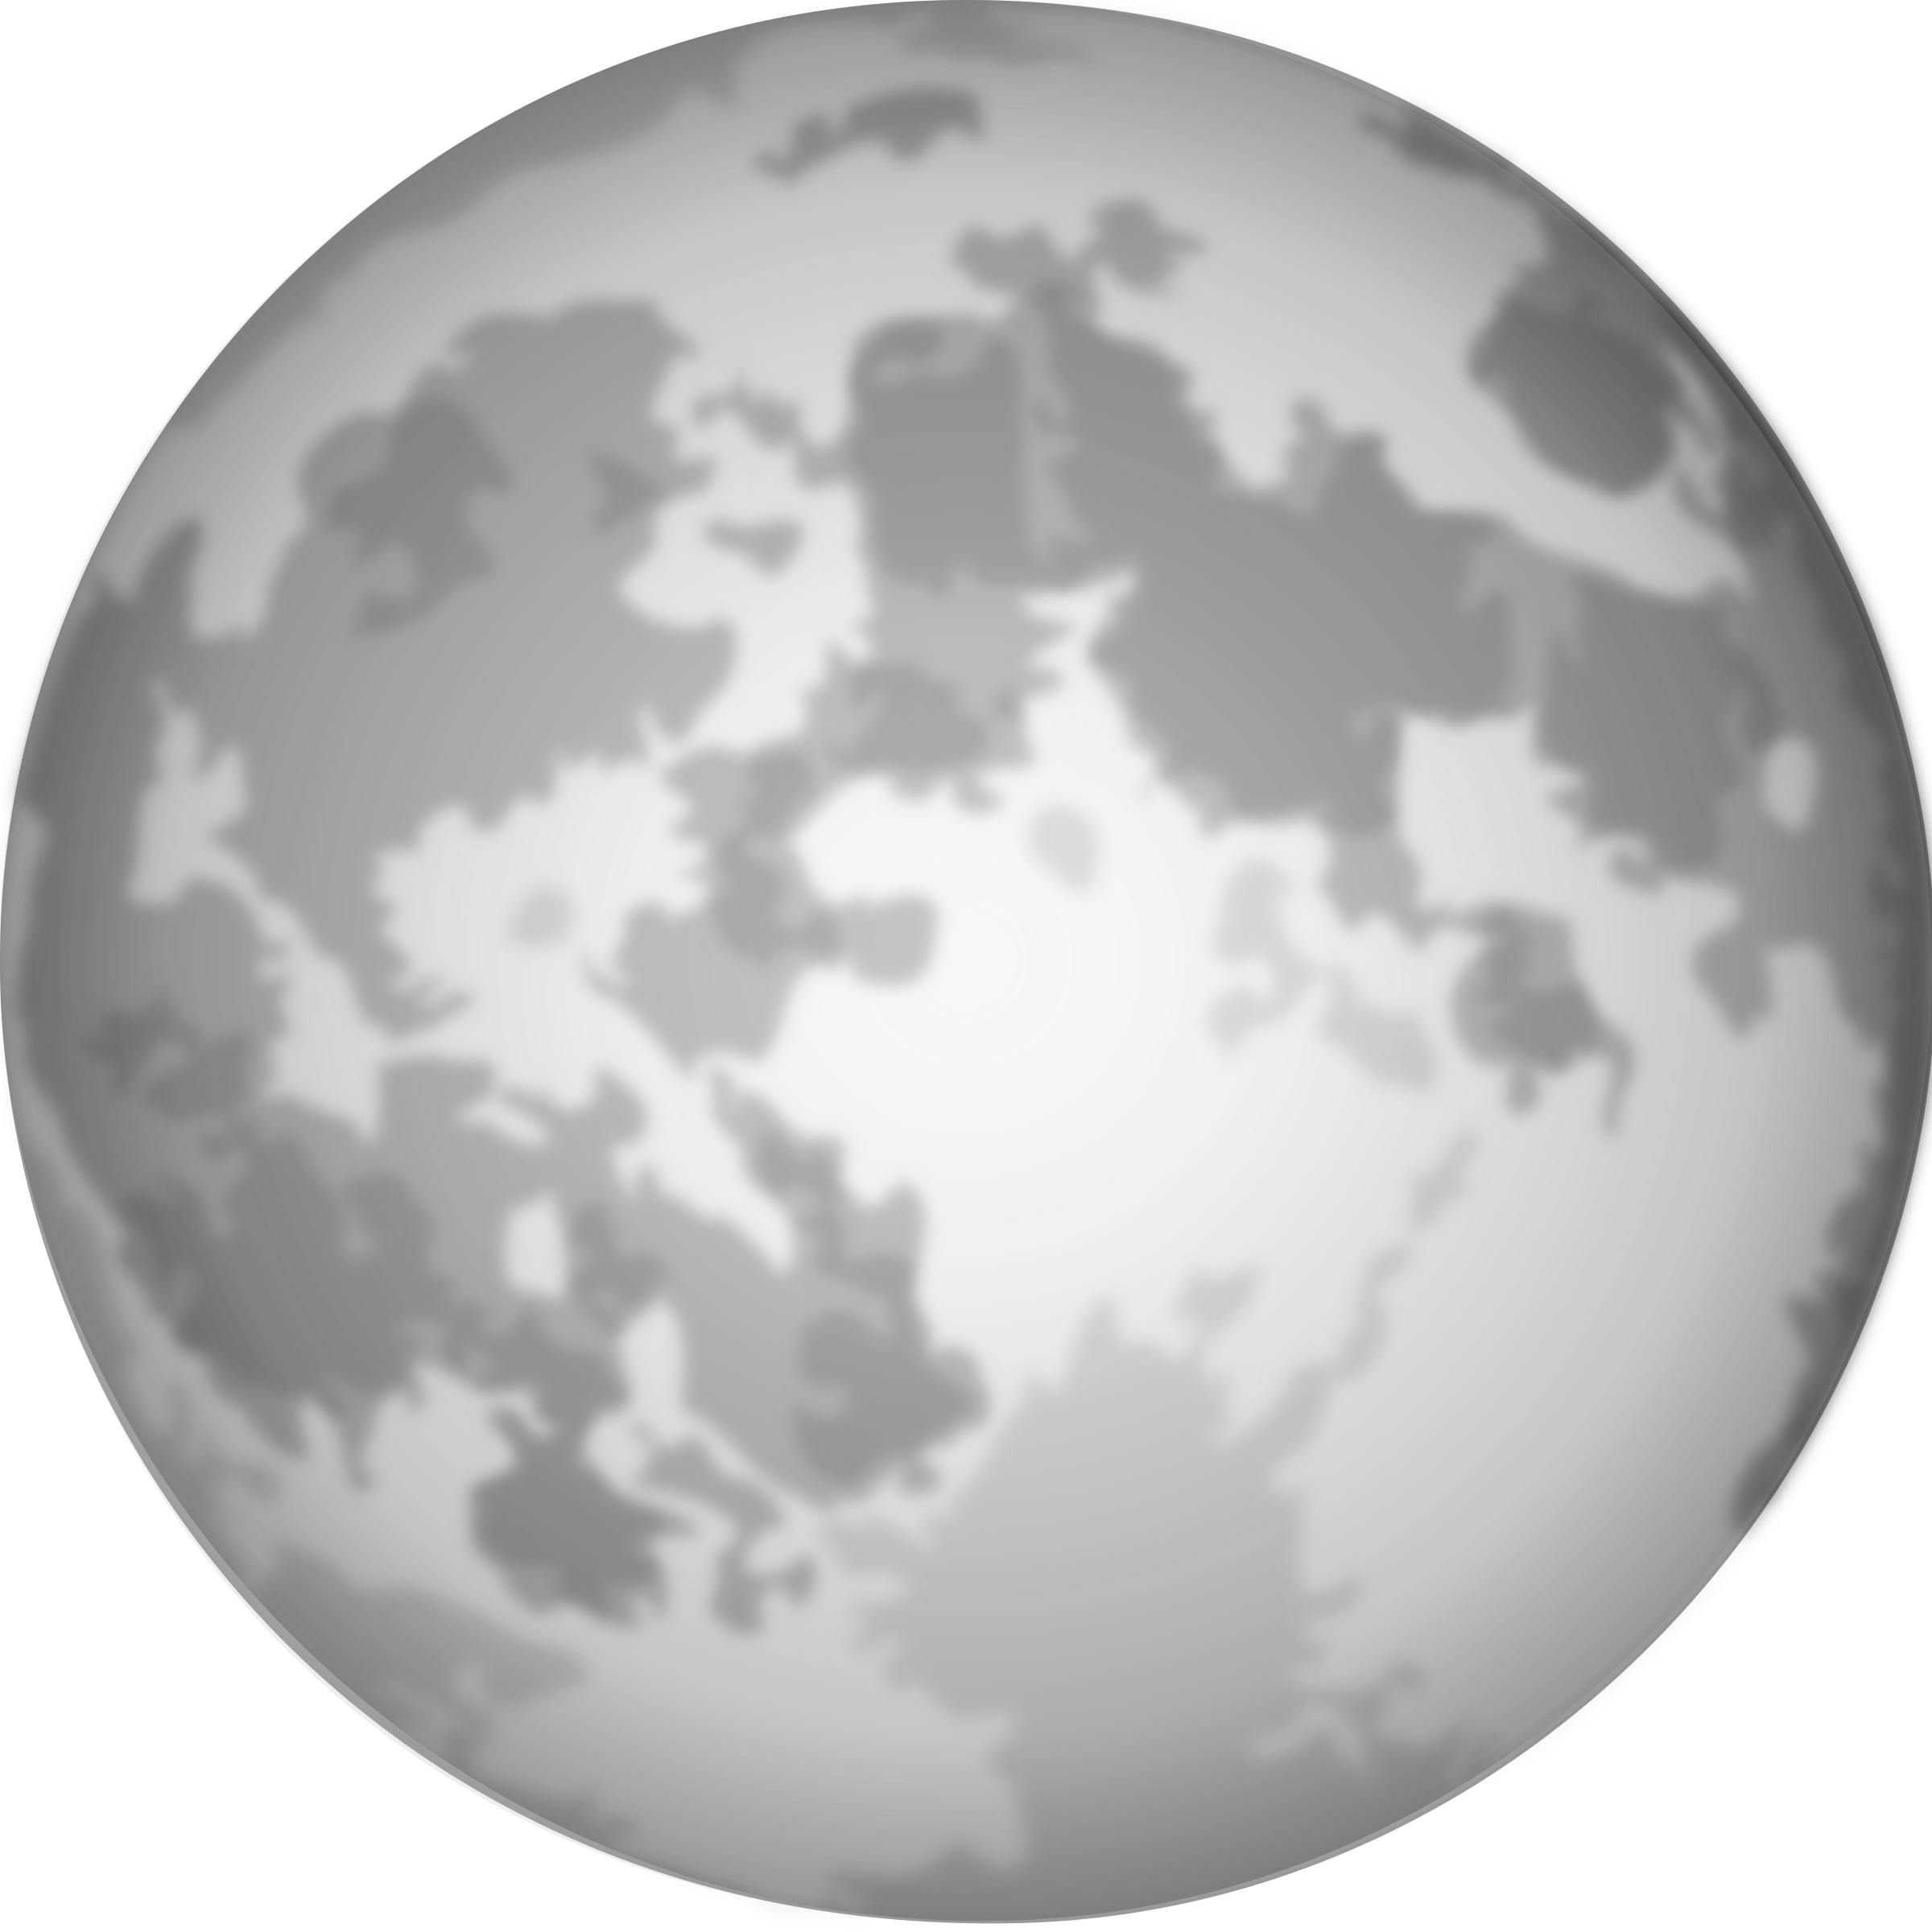 Full moon png. Images free download